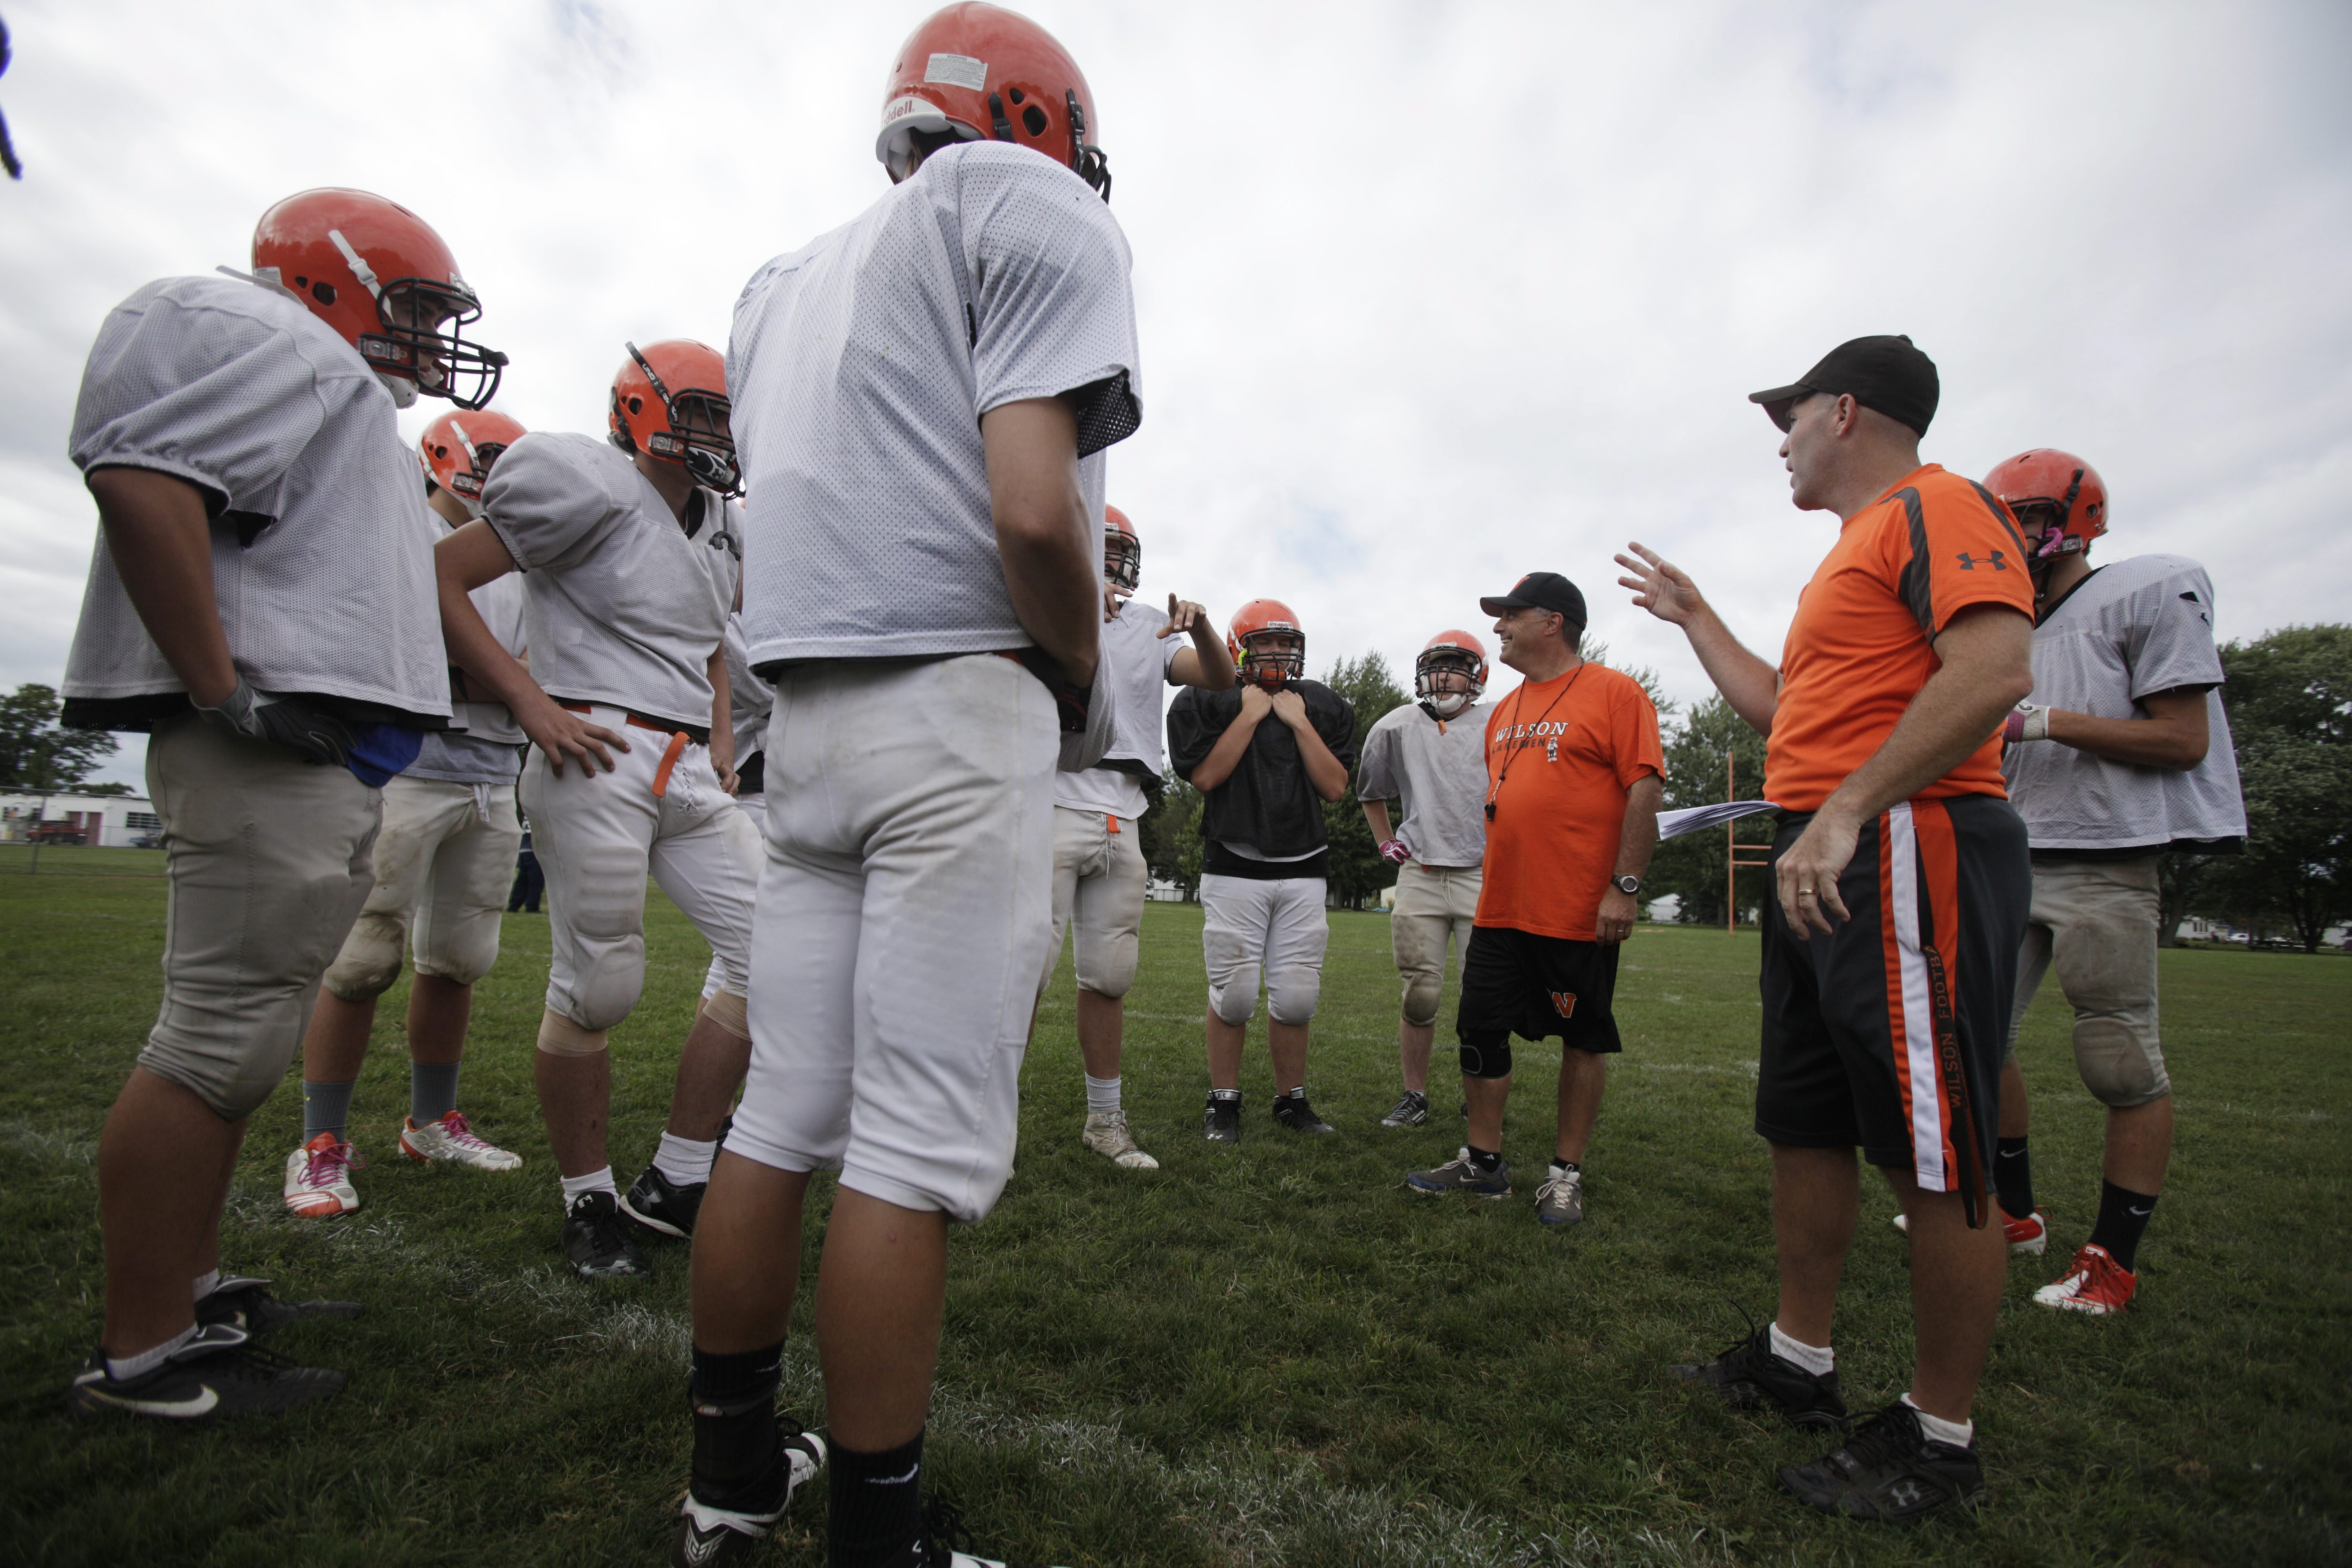 Wilson football head coach William Atlas, right, and defensive coordinator Al Scarpine, left,  talks with their players during practice at the school in Wilson Tuesday, September 3, 2013.  (Mark Mulville/Buffalo News)